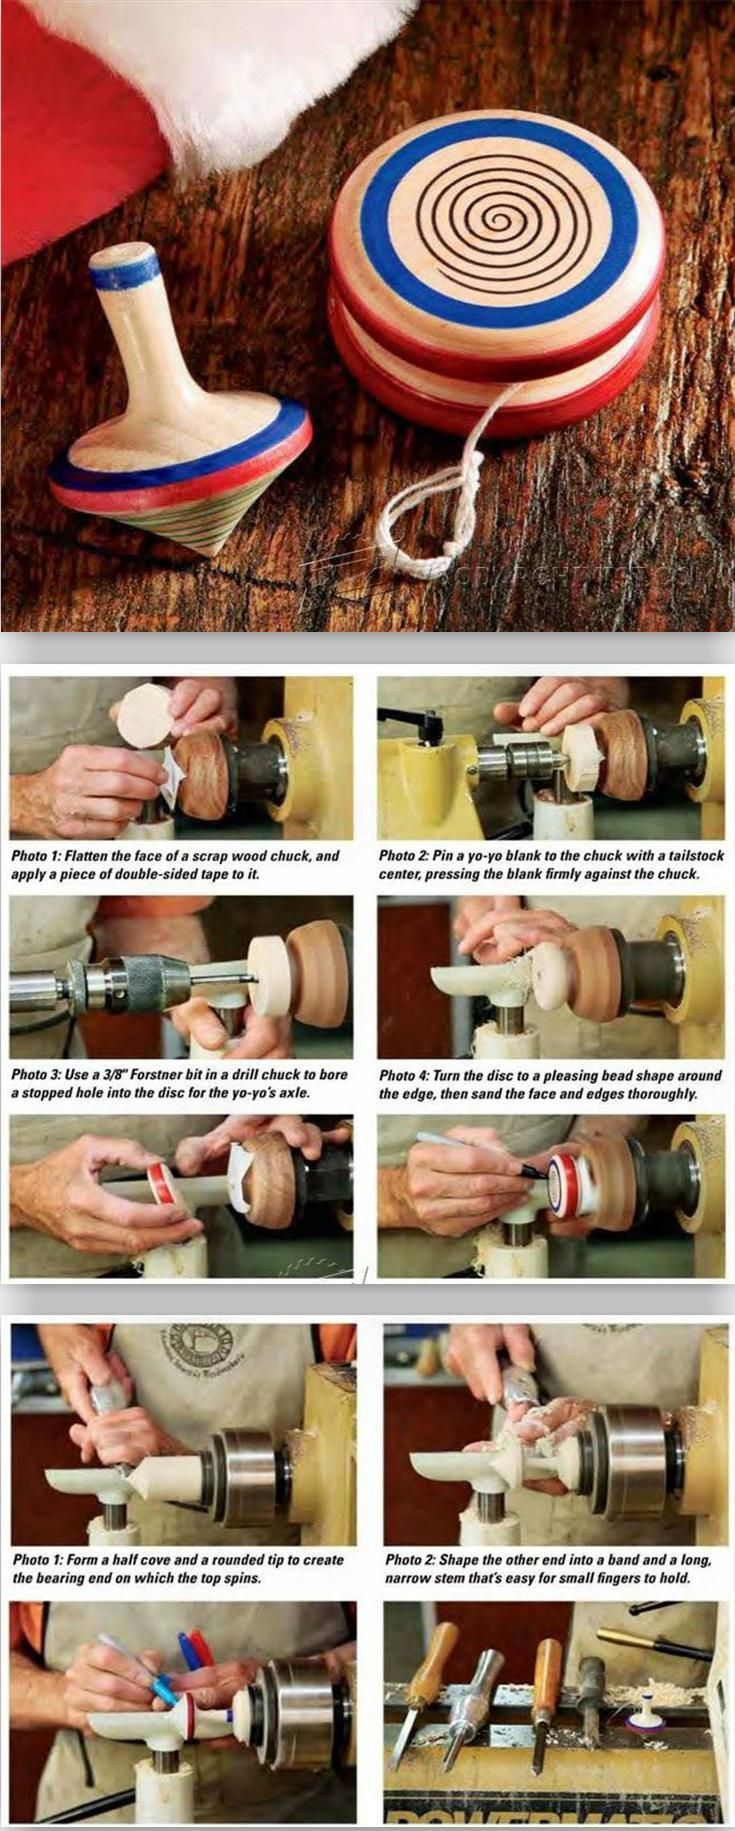 Woodturning Yo-Yo and Spinning Top - Children's Wooden Toy Plans and Projects | WoodArchivist.com